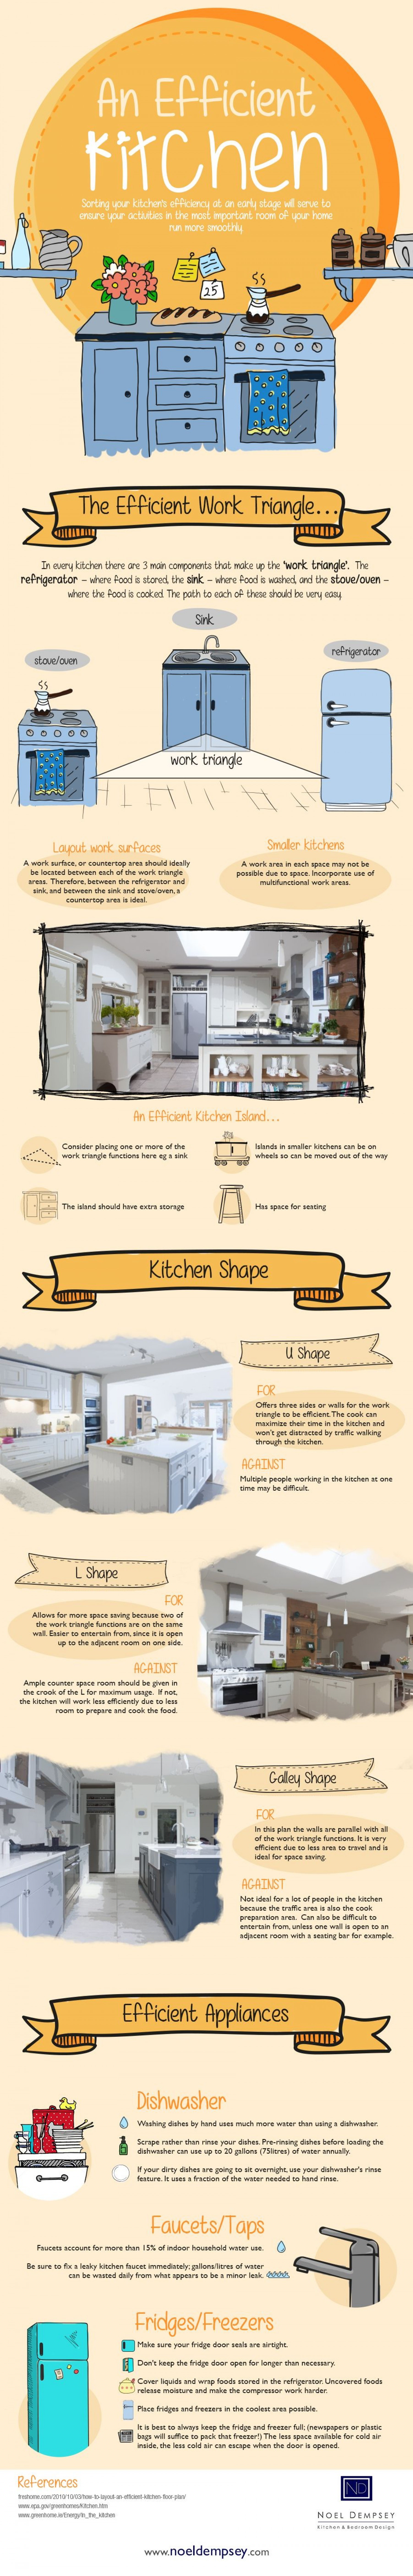 An Efficient Kitchen